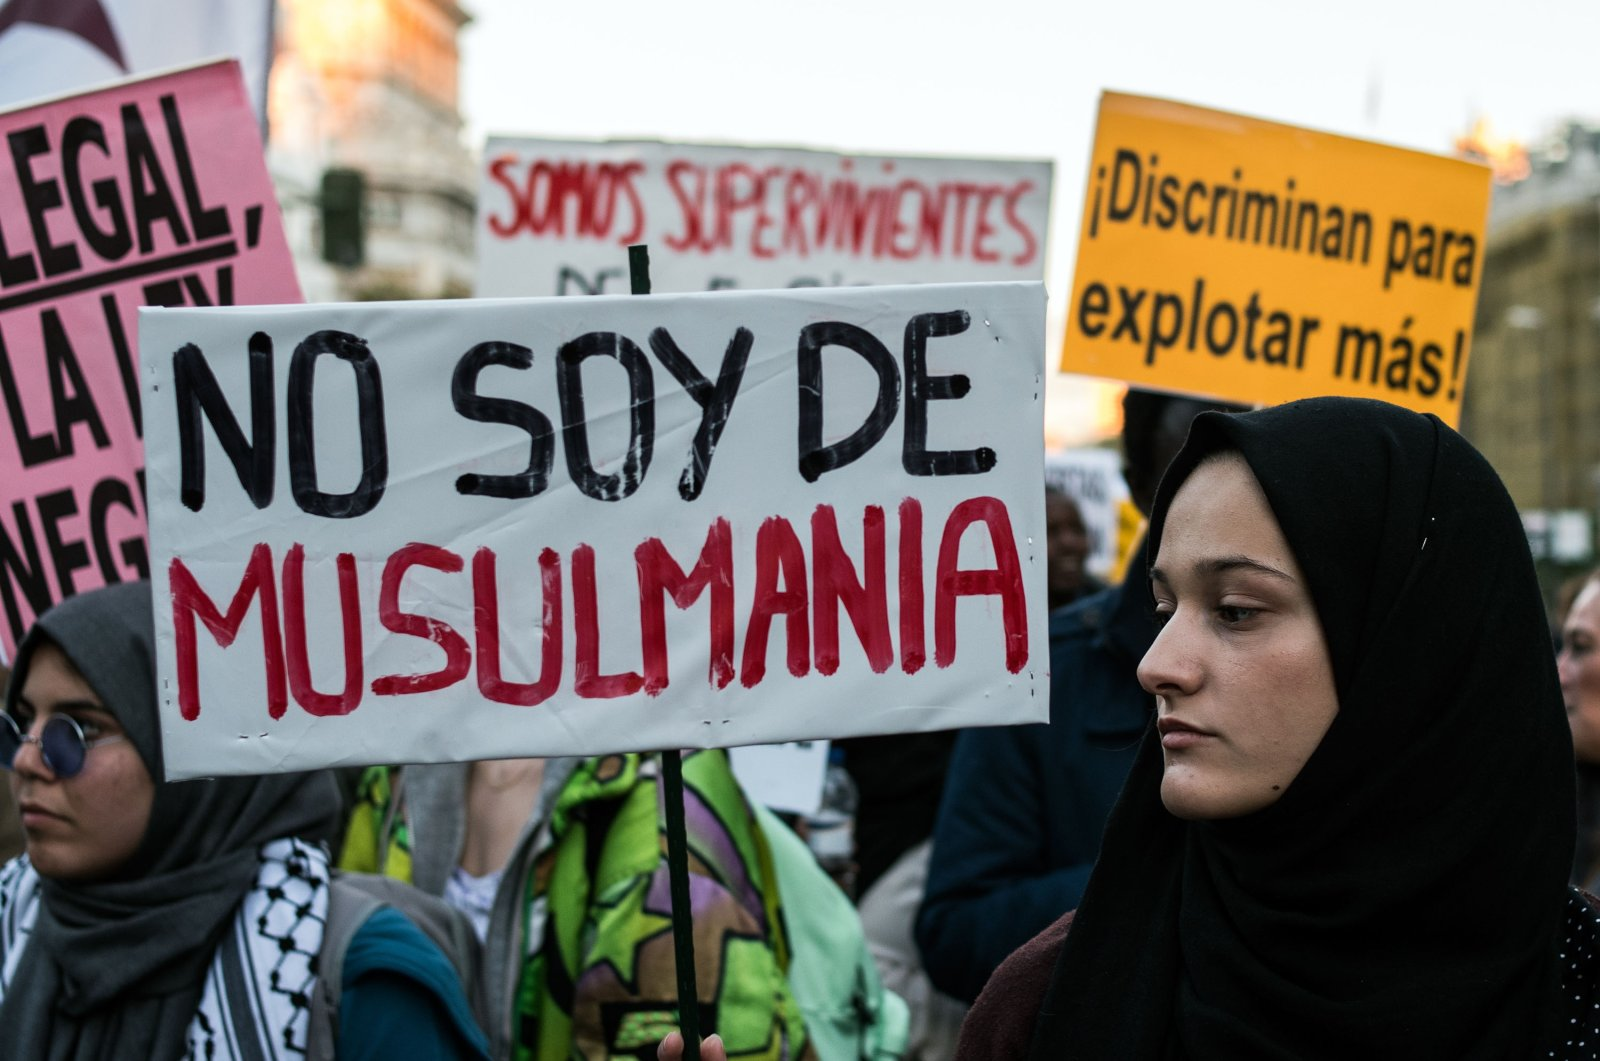 A woman protests against racism, Madrid, Spain, Nov 12, 2017. (Getty Images)